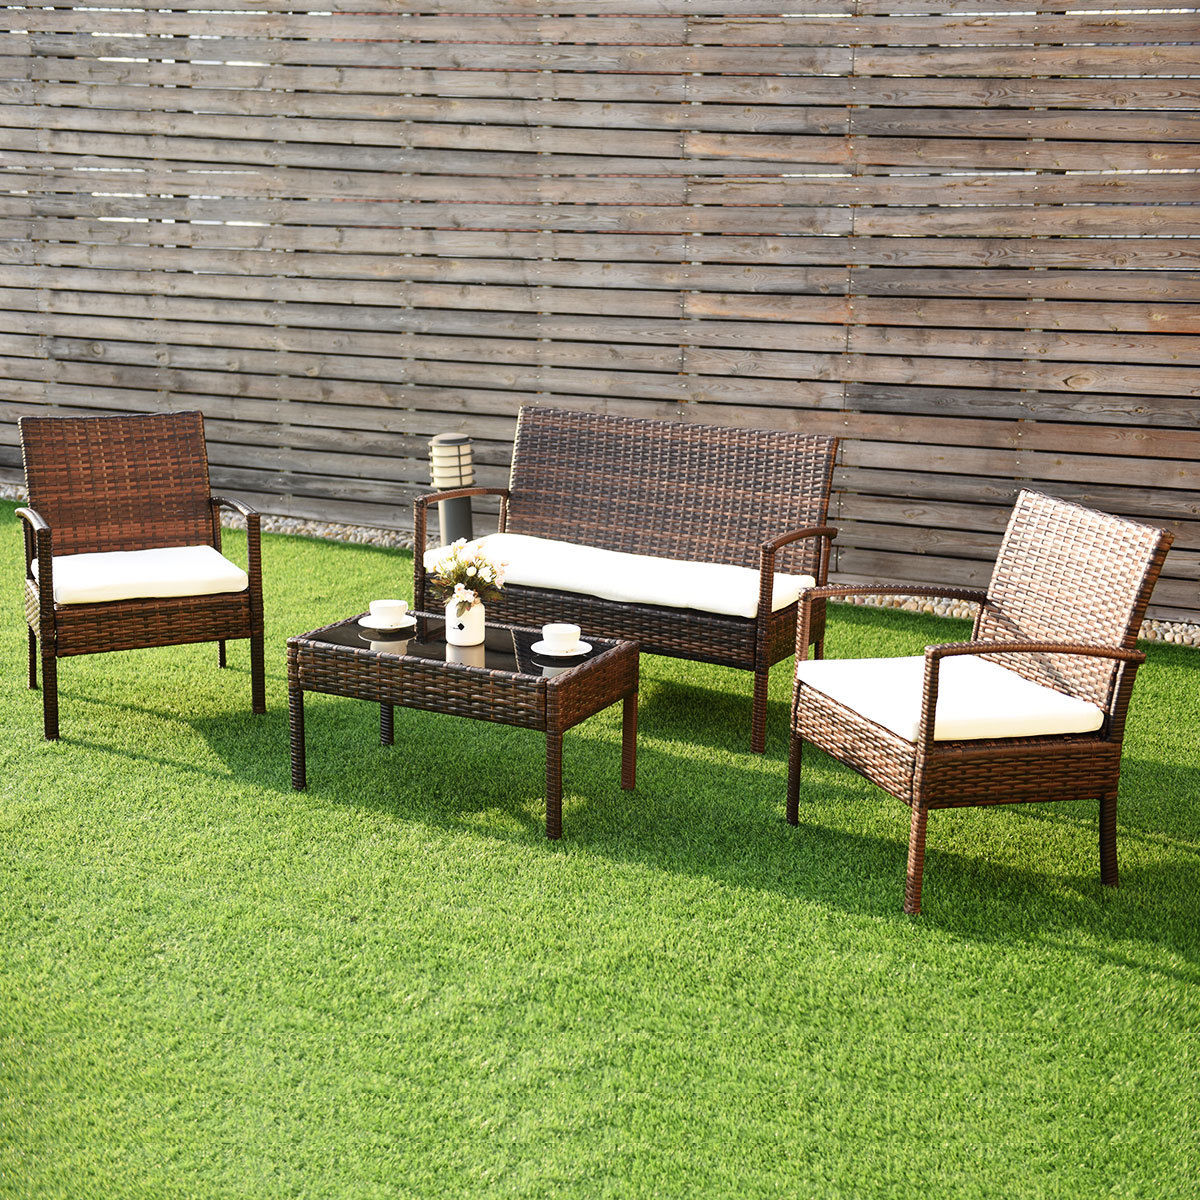 Costway 4 Pc Rattan Patio Furniture Set Garden Lawn Sofa Wicker Cushioned Seat brown by Costway